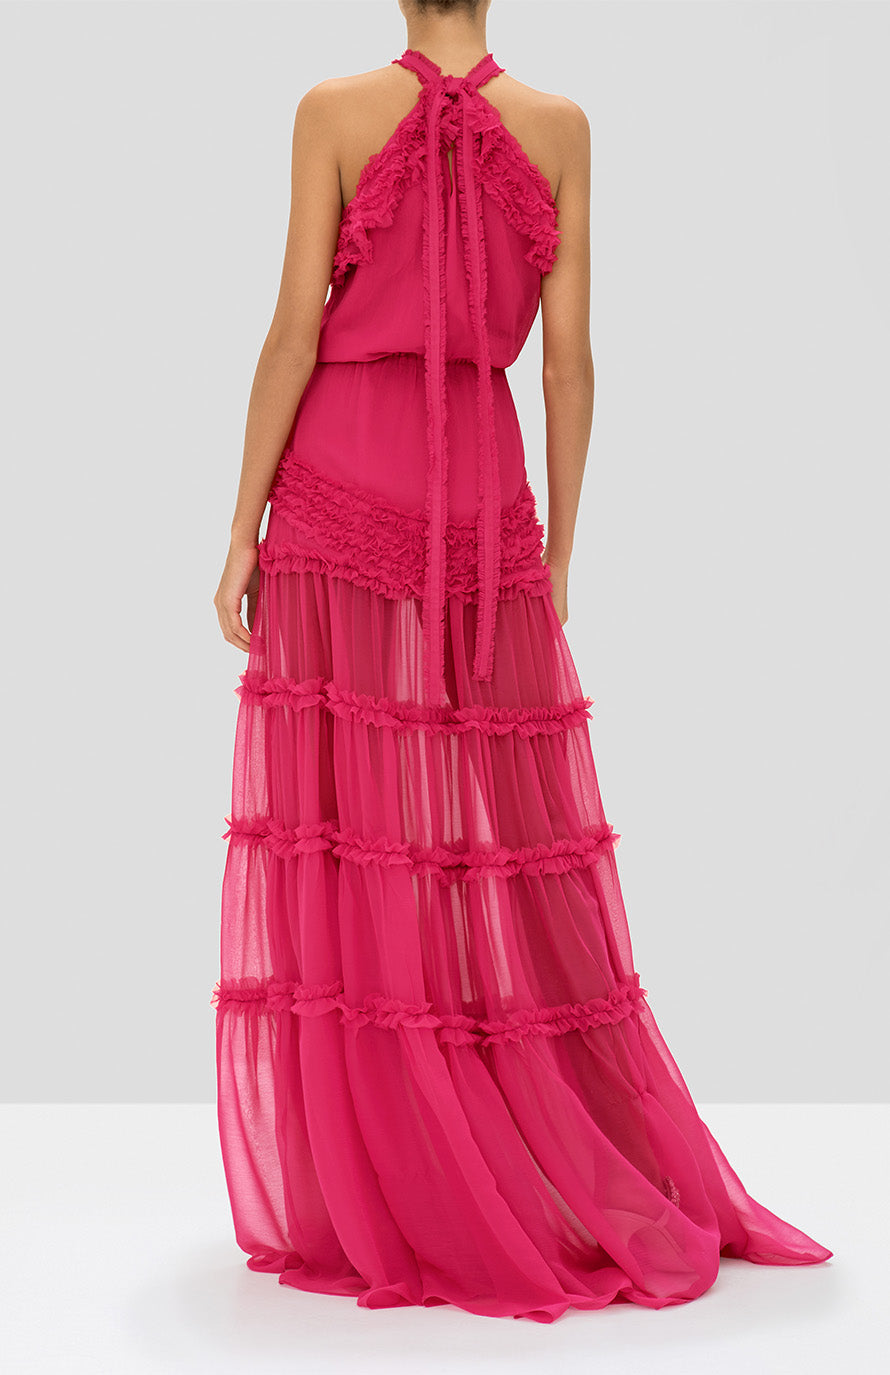 Alexis Lorinda Dress in Azalea Pink from the Holiday 2019 Ready To Wear Collection - Rear View